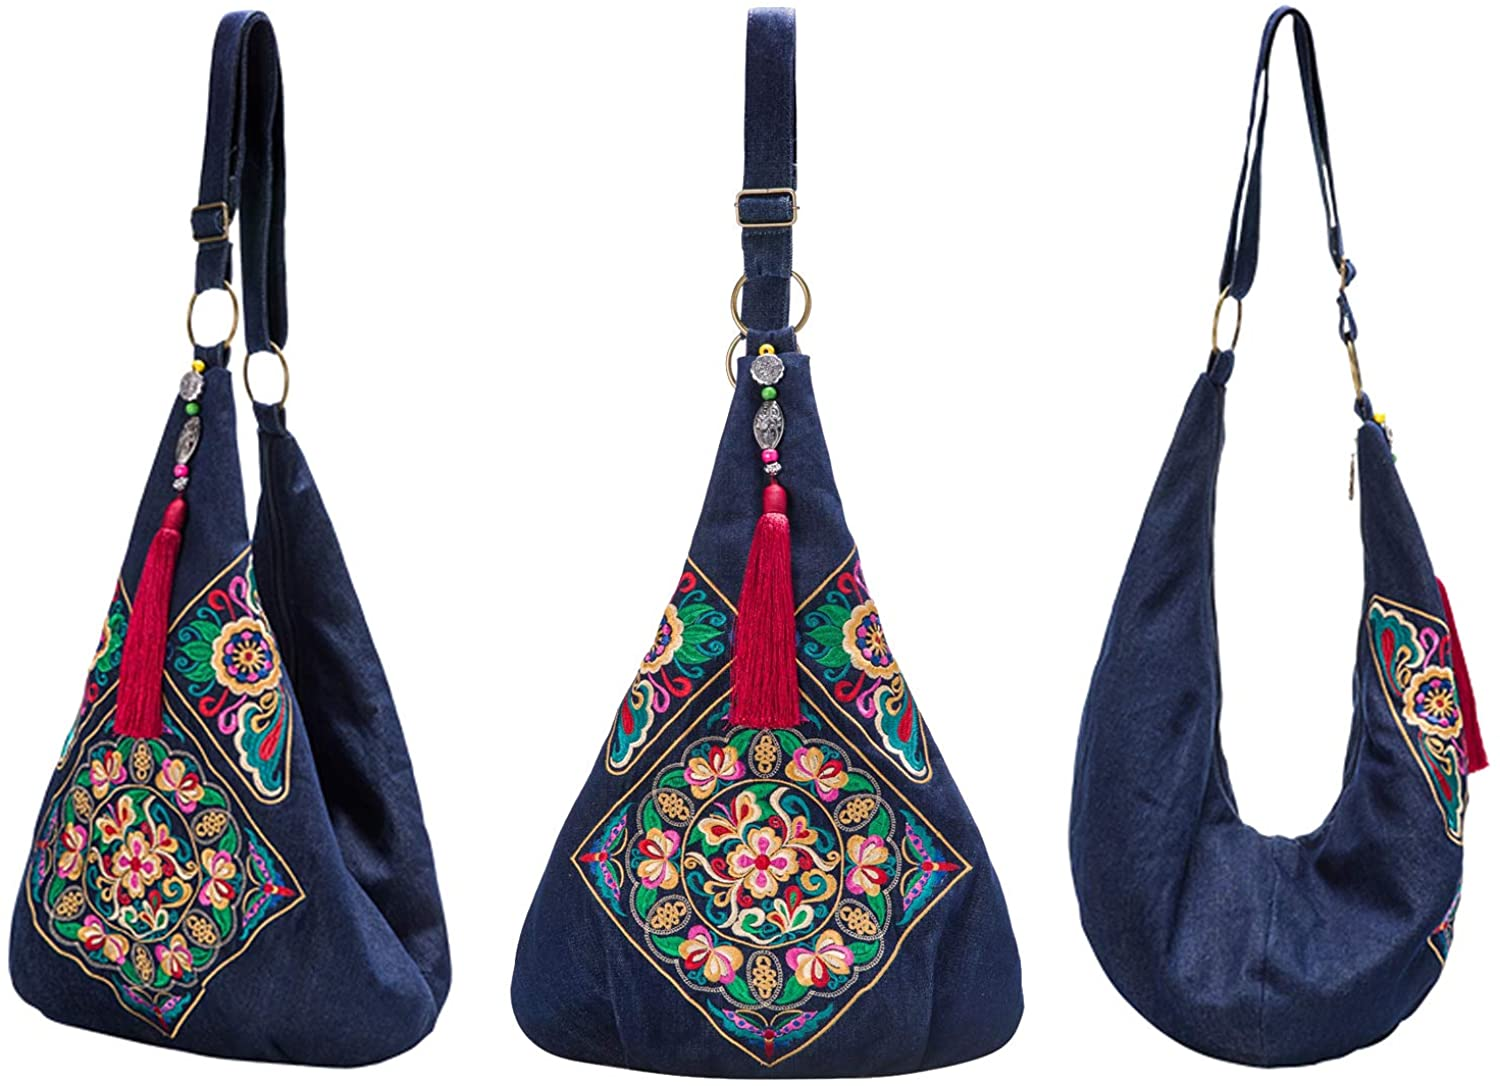 Women Crossbody Bag Fashion Hobo Shoulder Bags Casual Cross Body Denim Handmade Sling Bags,Heavy Embroidery Messenger Bag  Clothing